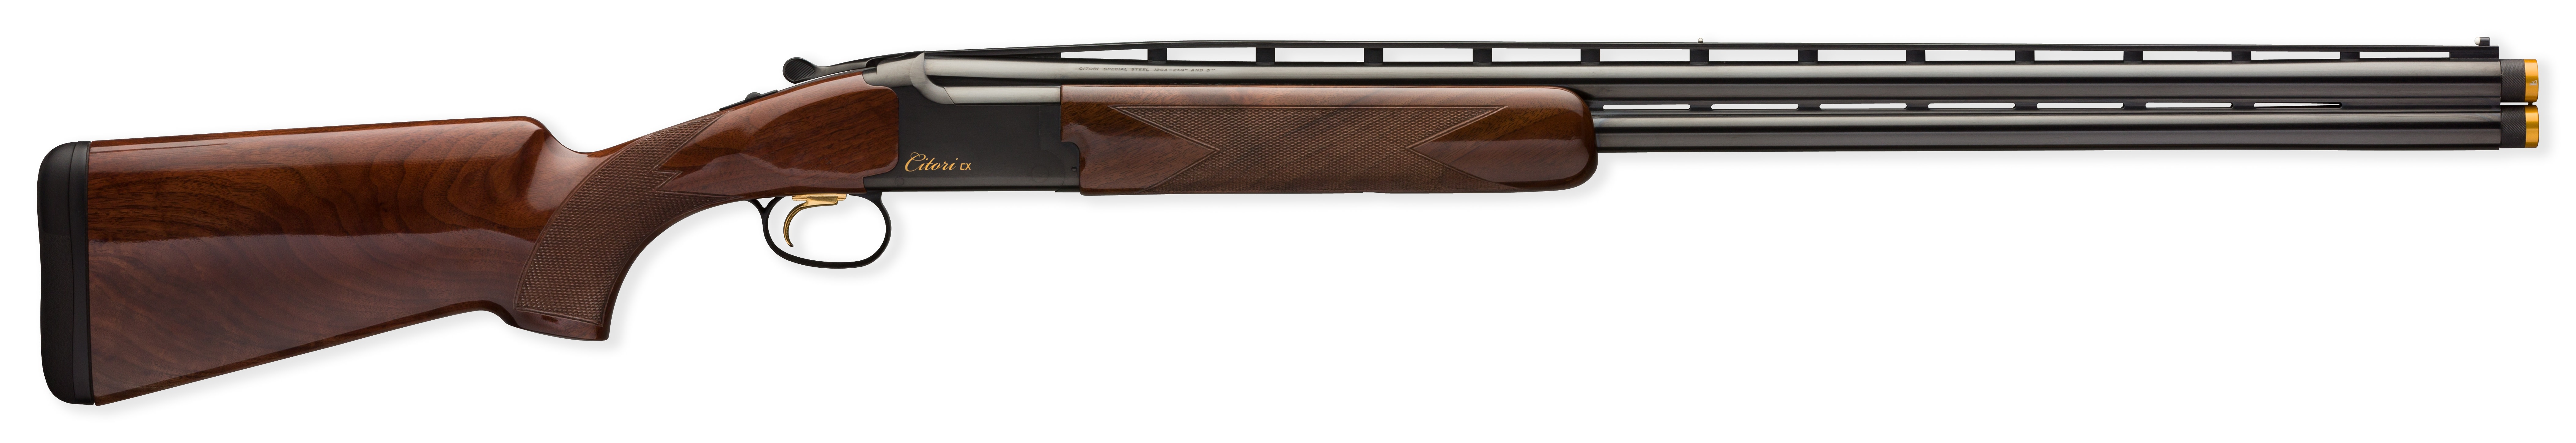 Browning Citori CX Over/Under 3'' 12 Gauge 32'' Blued Steel - American Walnut